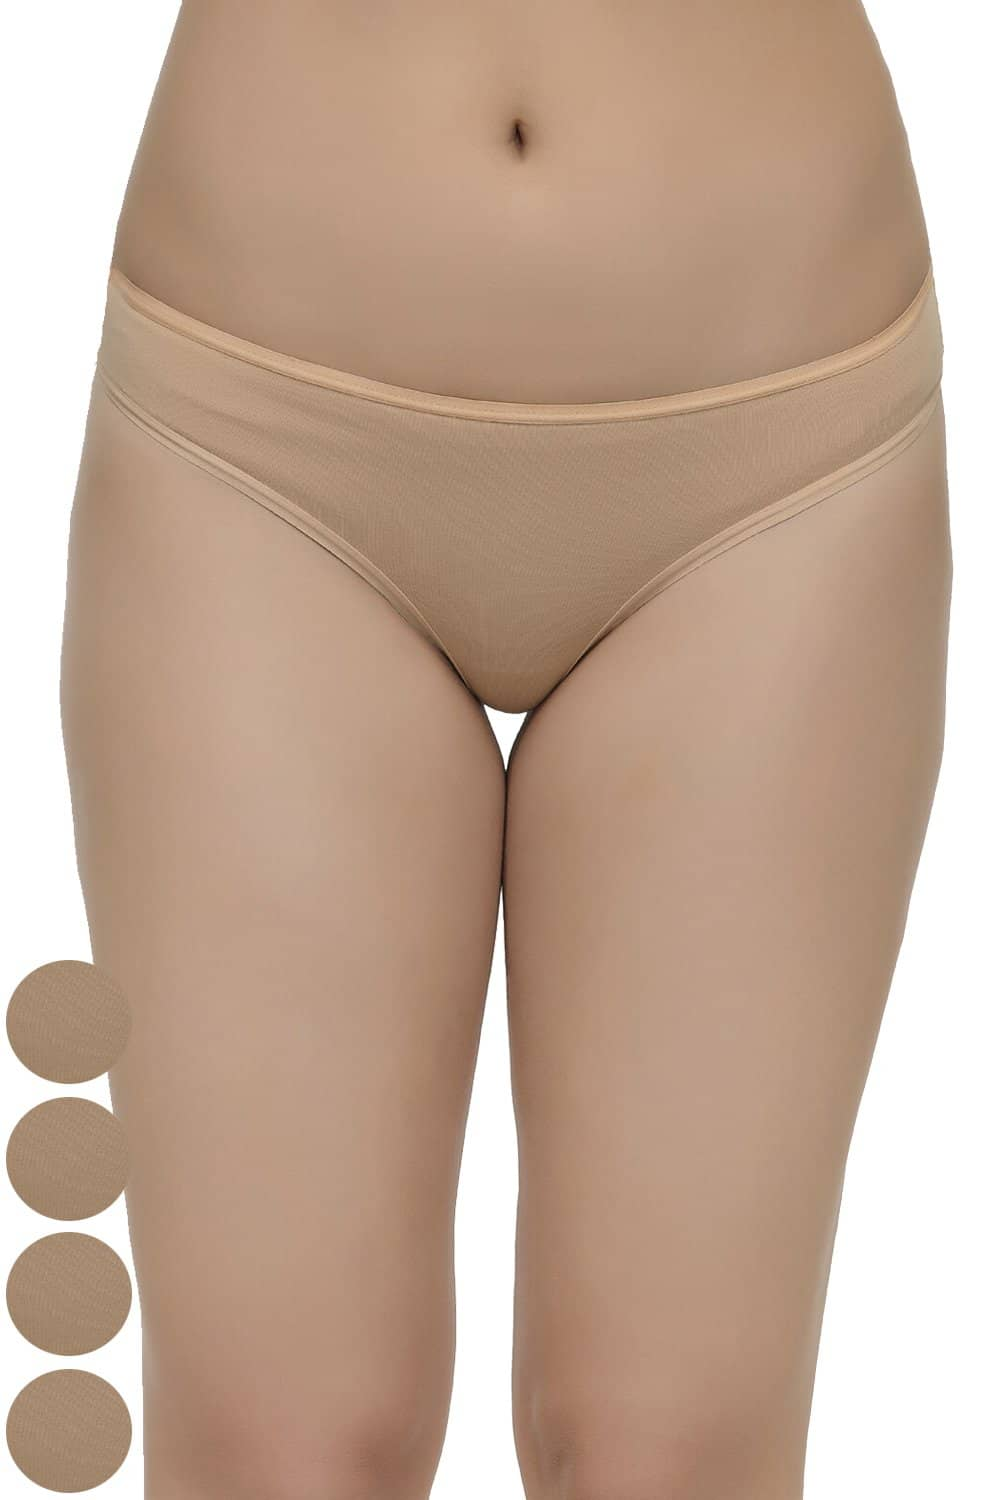 Inner Sense Organic Cotton Antimicrobial Thong (Pack Of 5)